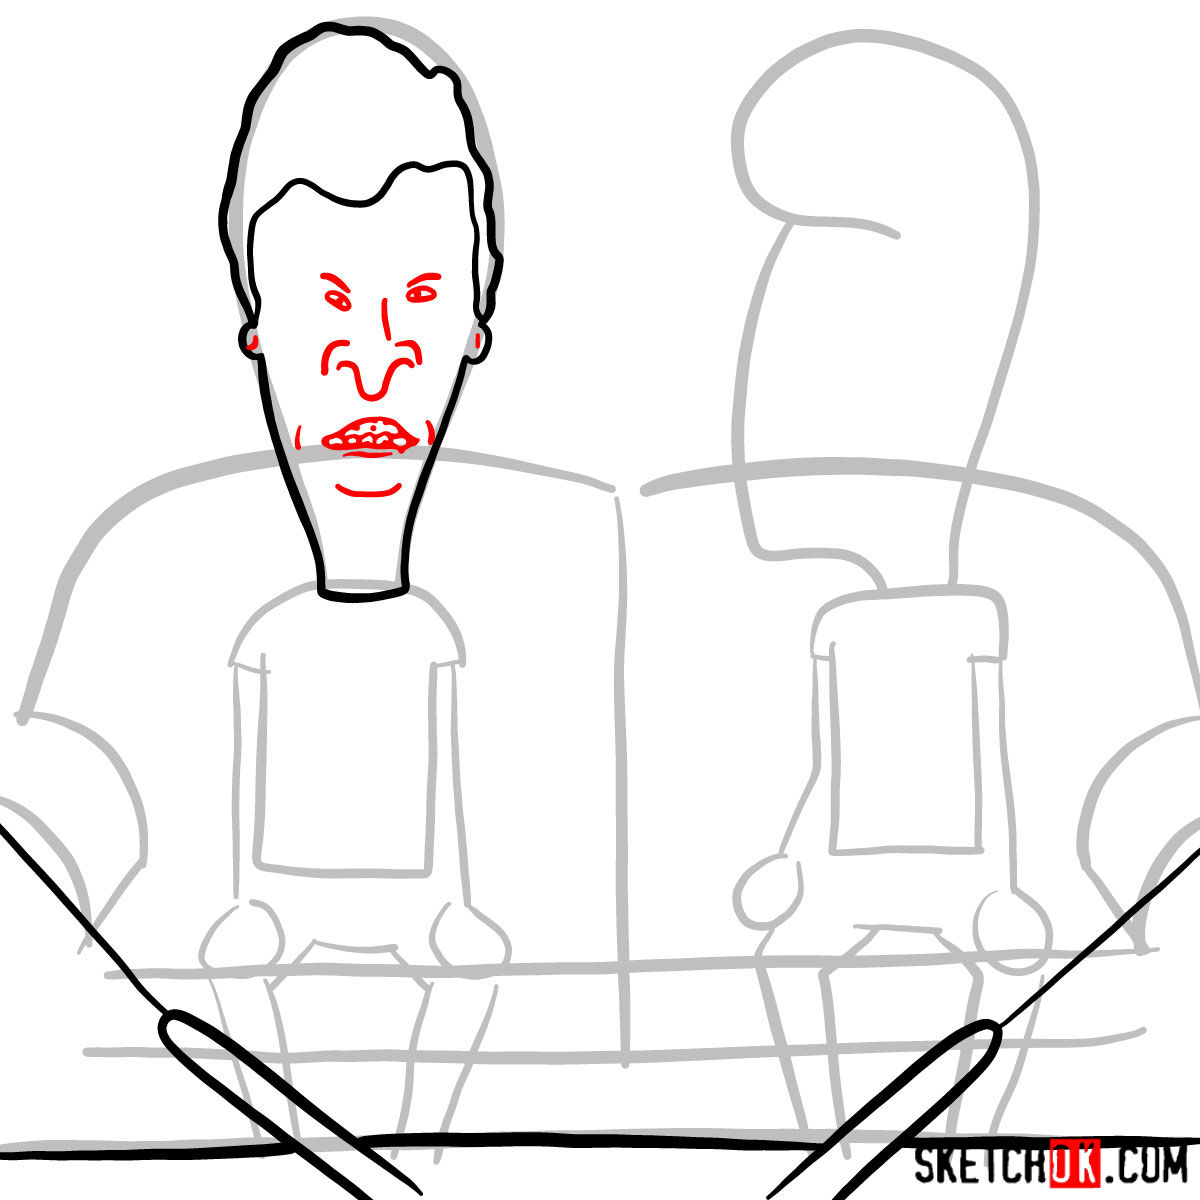 How to draw Beavis and Butt-Head - step 05